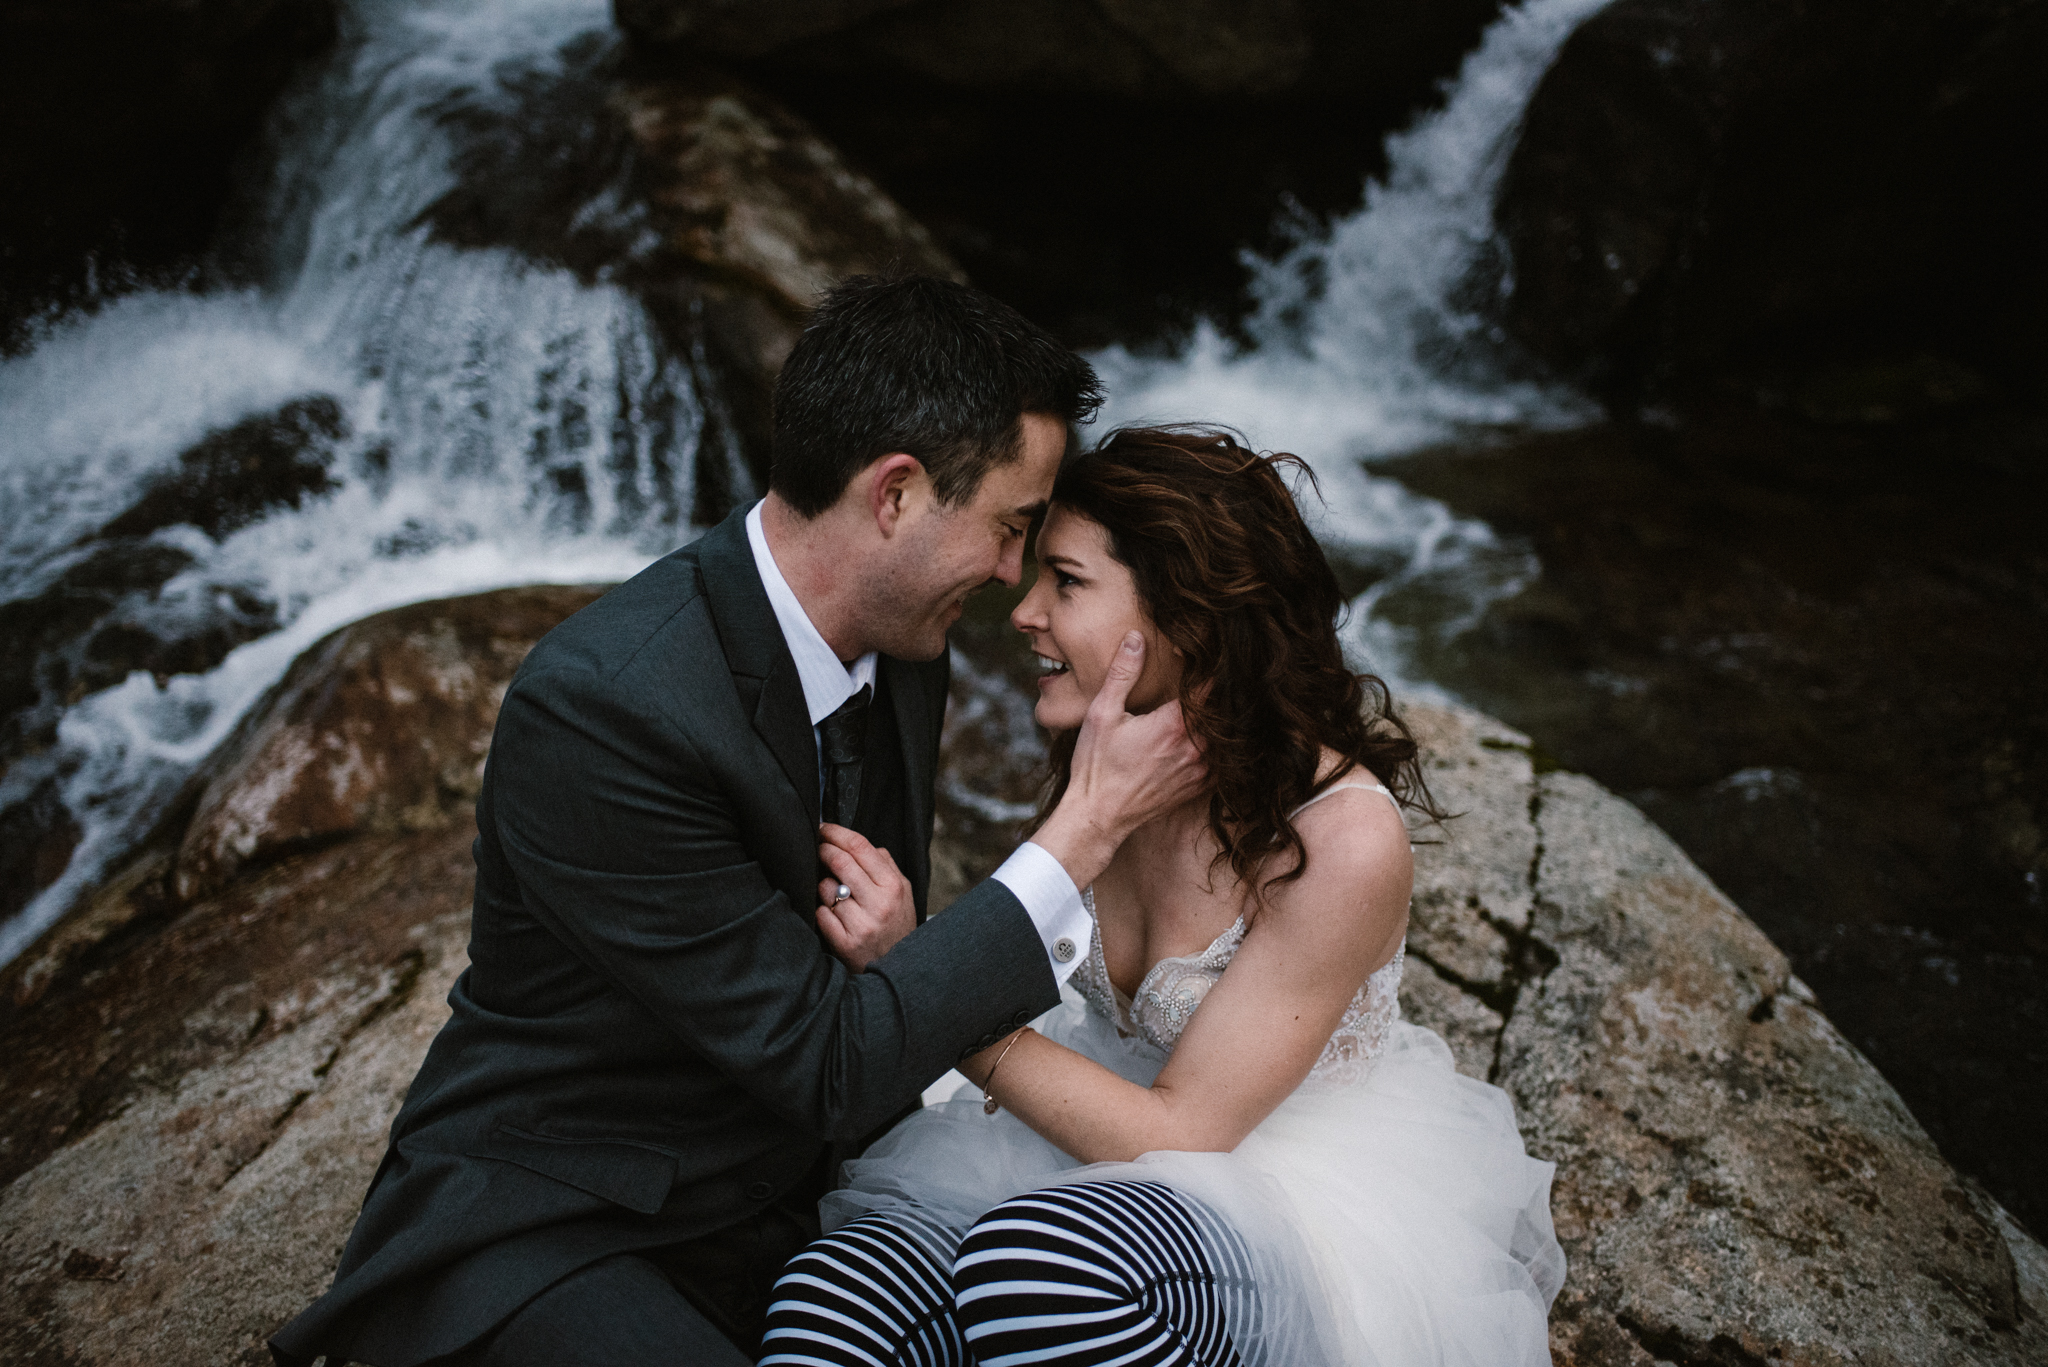 Stephanie and Steve - Shenandoah National Park Elopement - Sunrise Hiking Elopement - Adventurous Elopement - Virginia Elopement Photographer - Shenandoah national Park Wedding Photographer - White Sails Creative_22.jpg